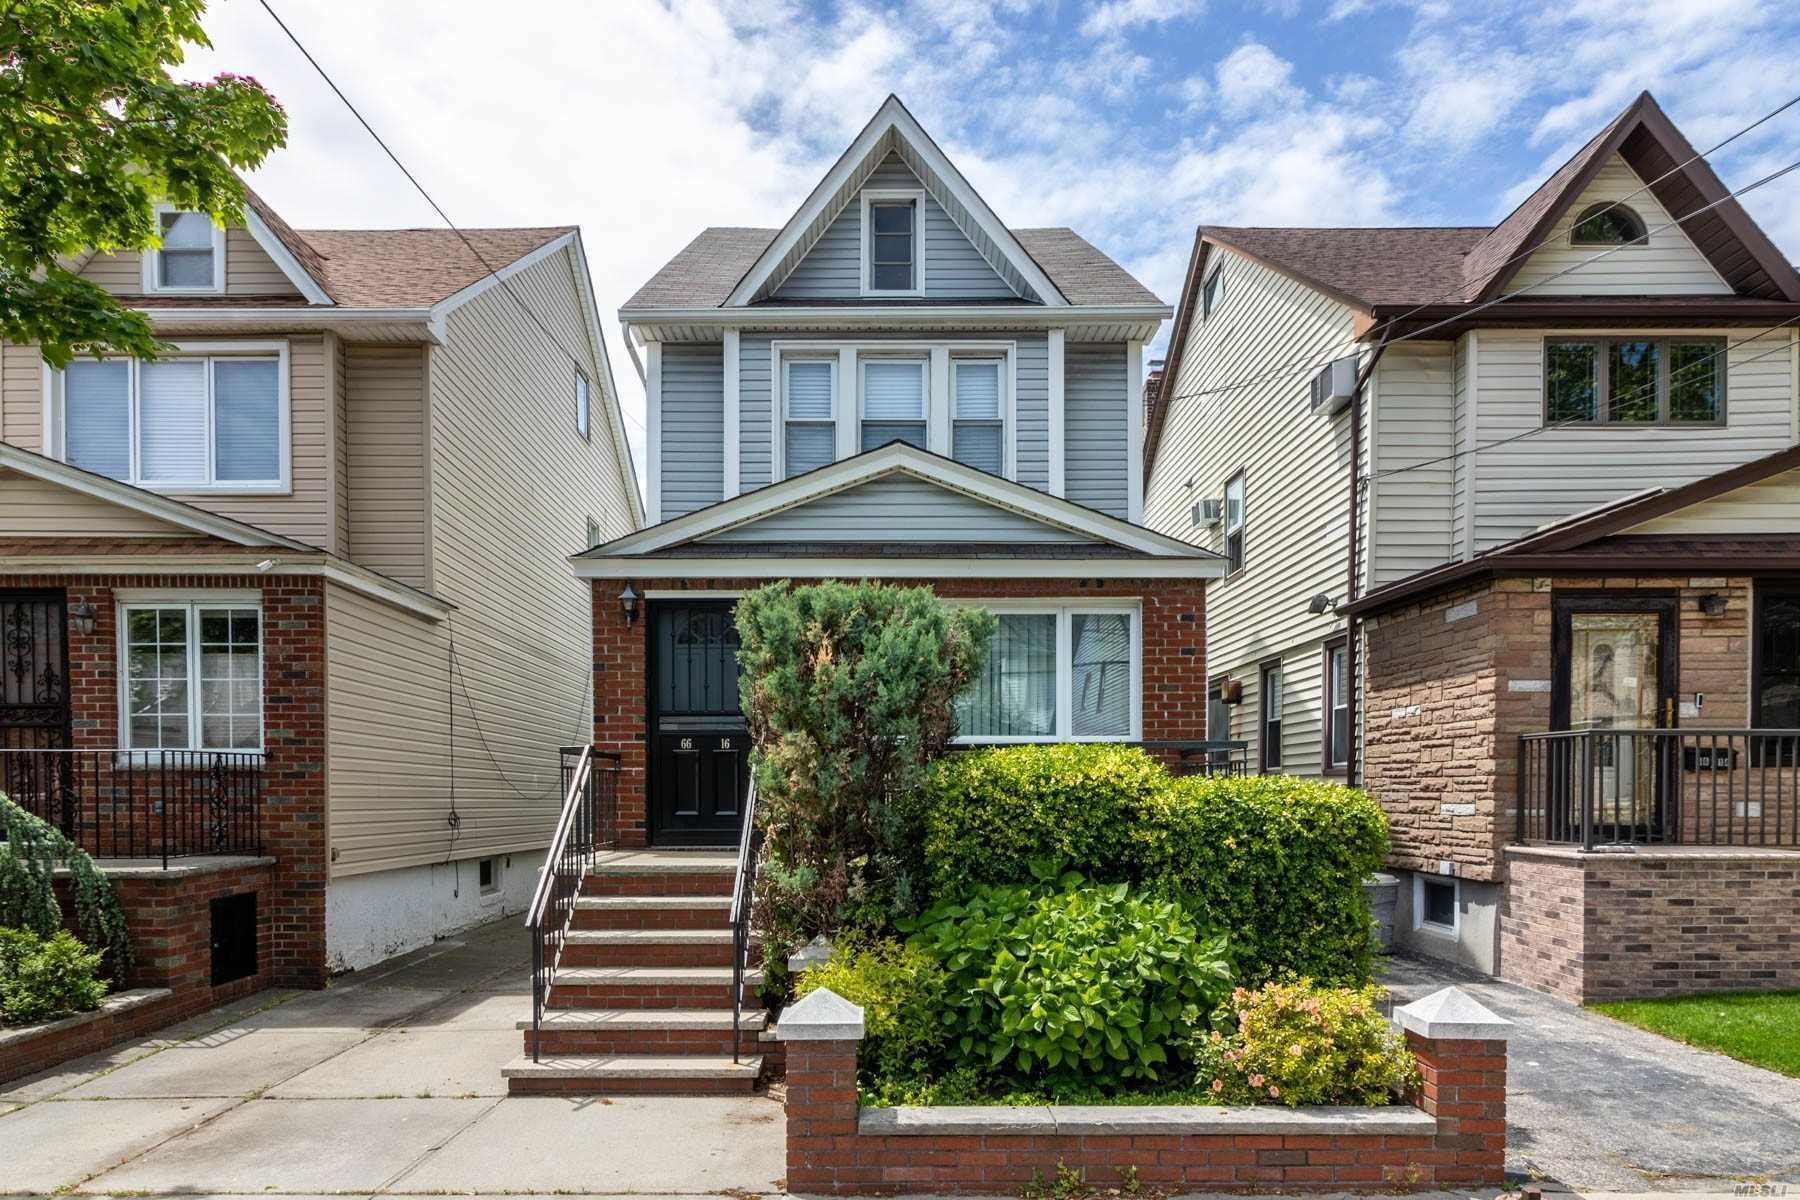 66-16 77th Place, Middle Village, NY 11379 - MLS#: 3218153